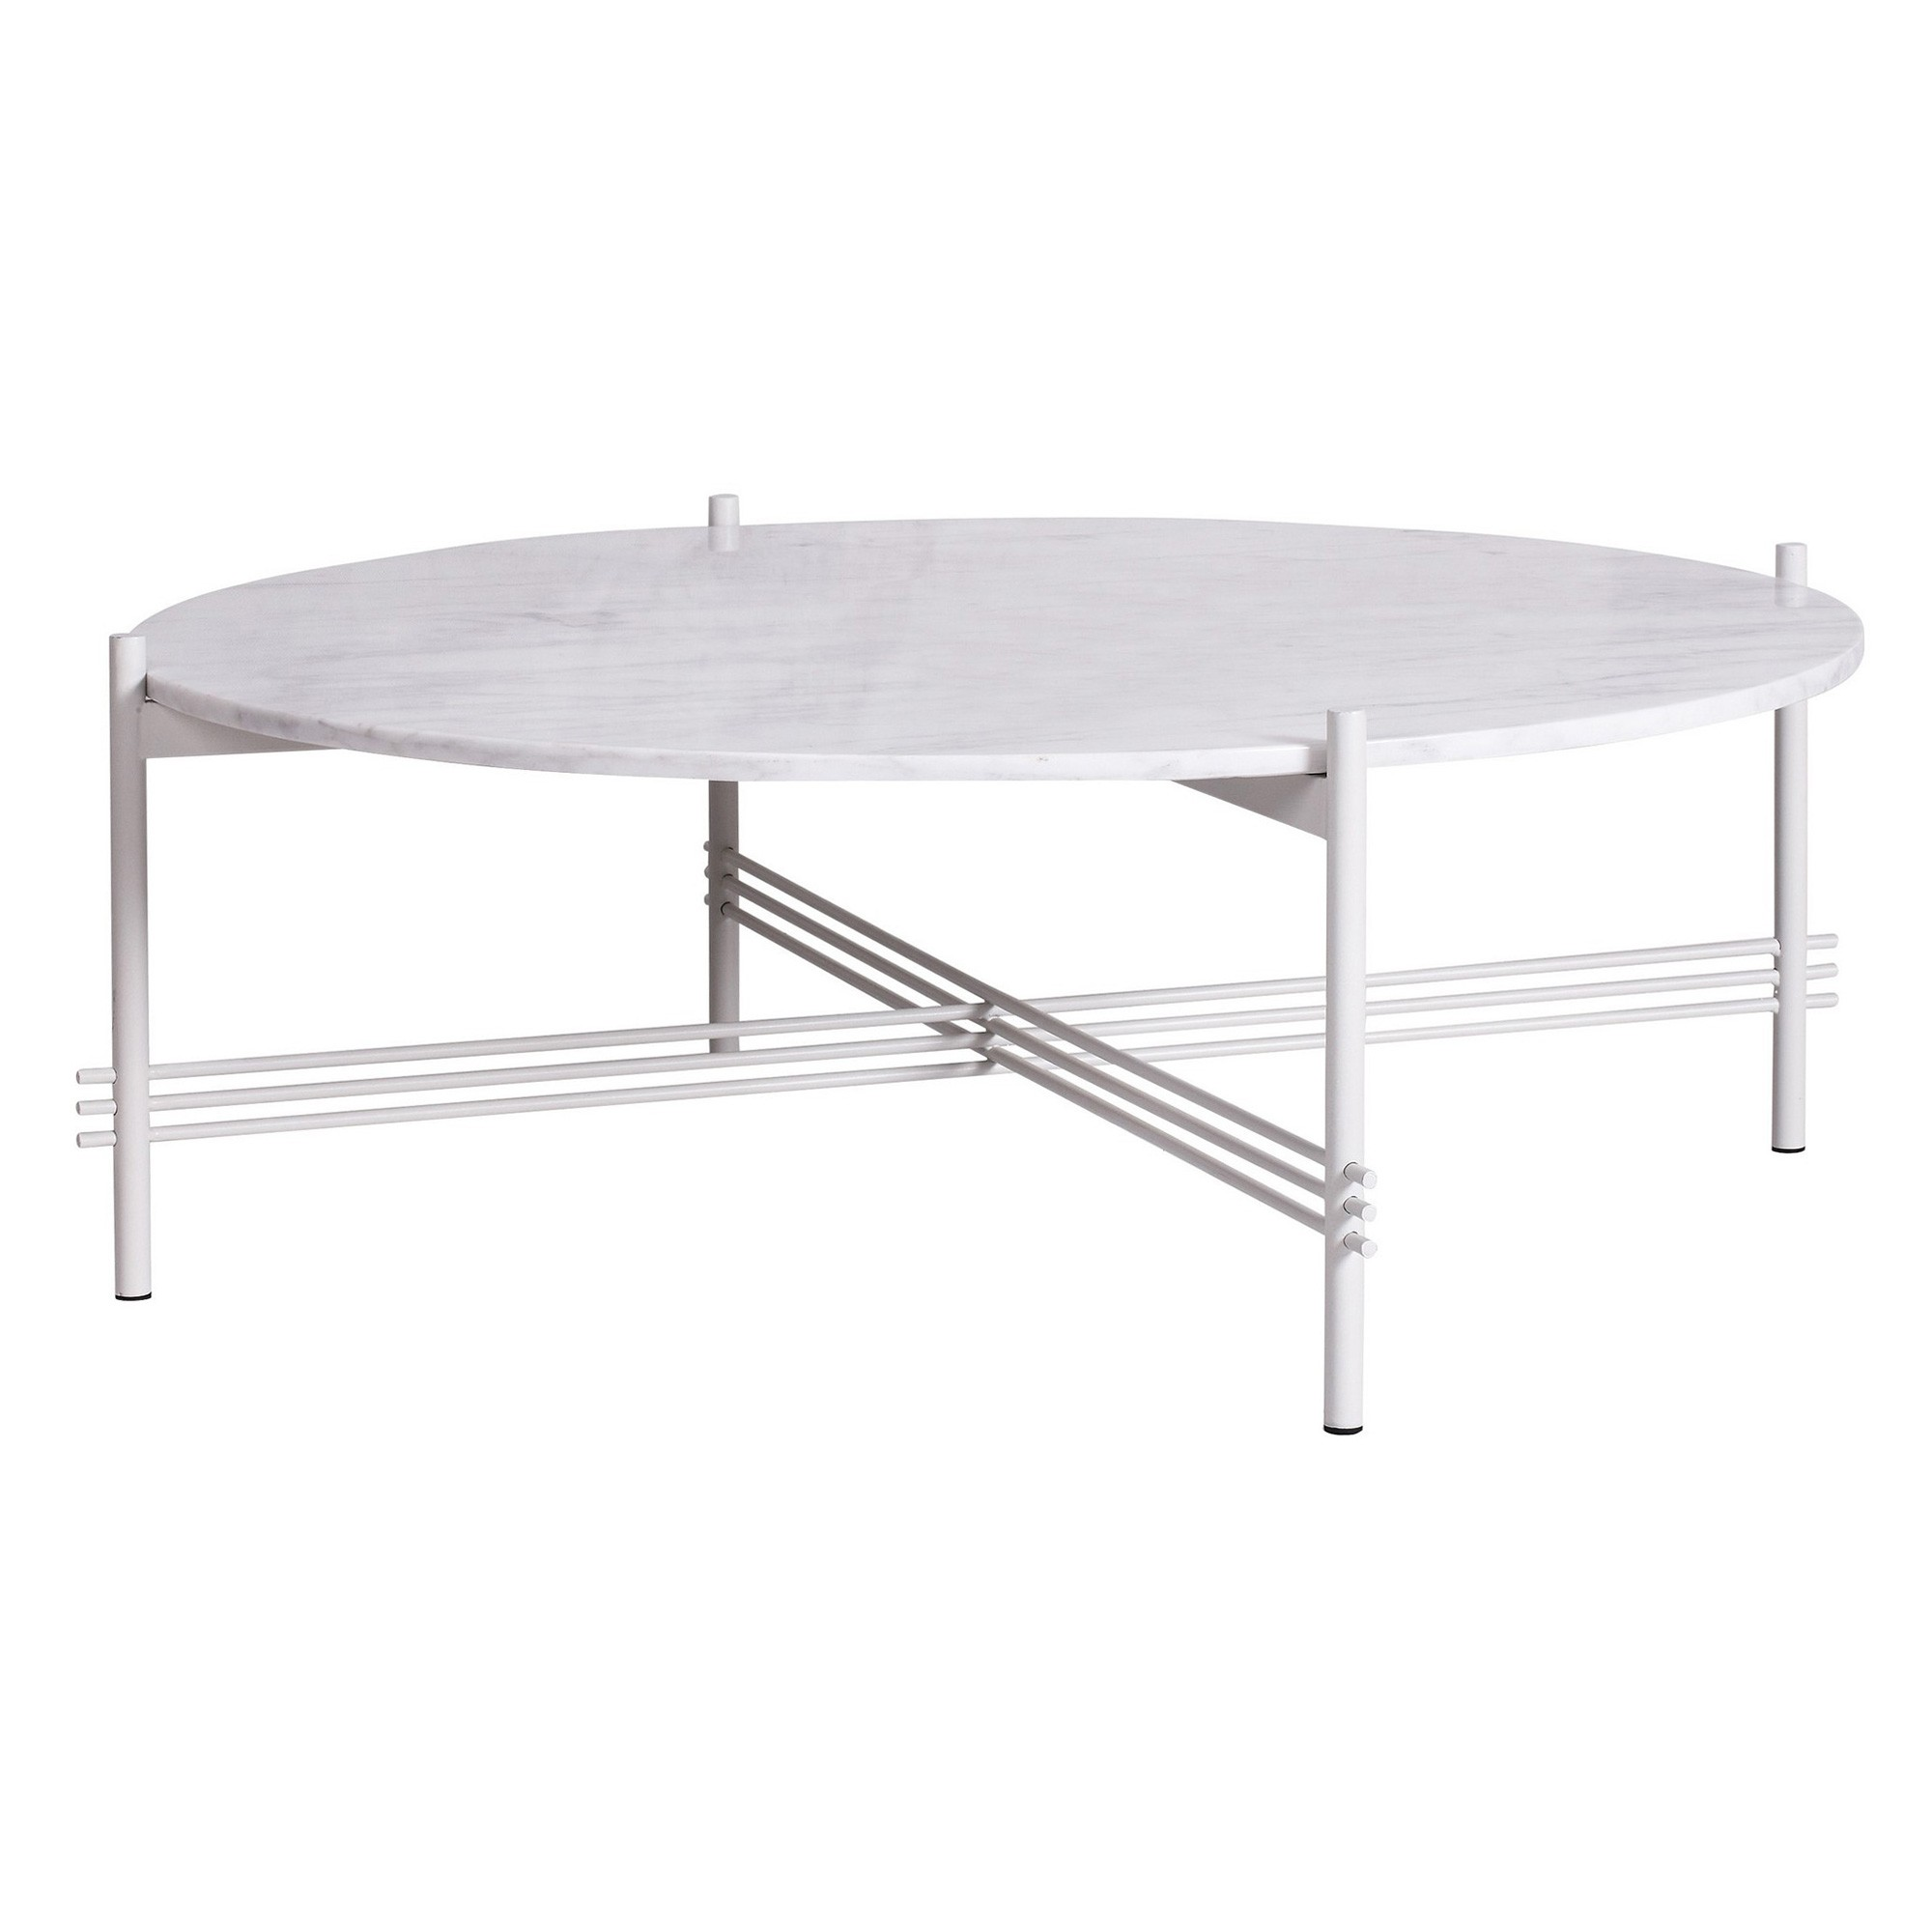 Monument Marble Top Steel Round Coffee Table, 100cm, White